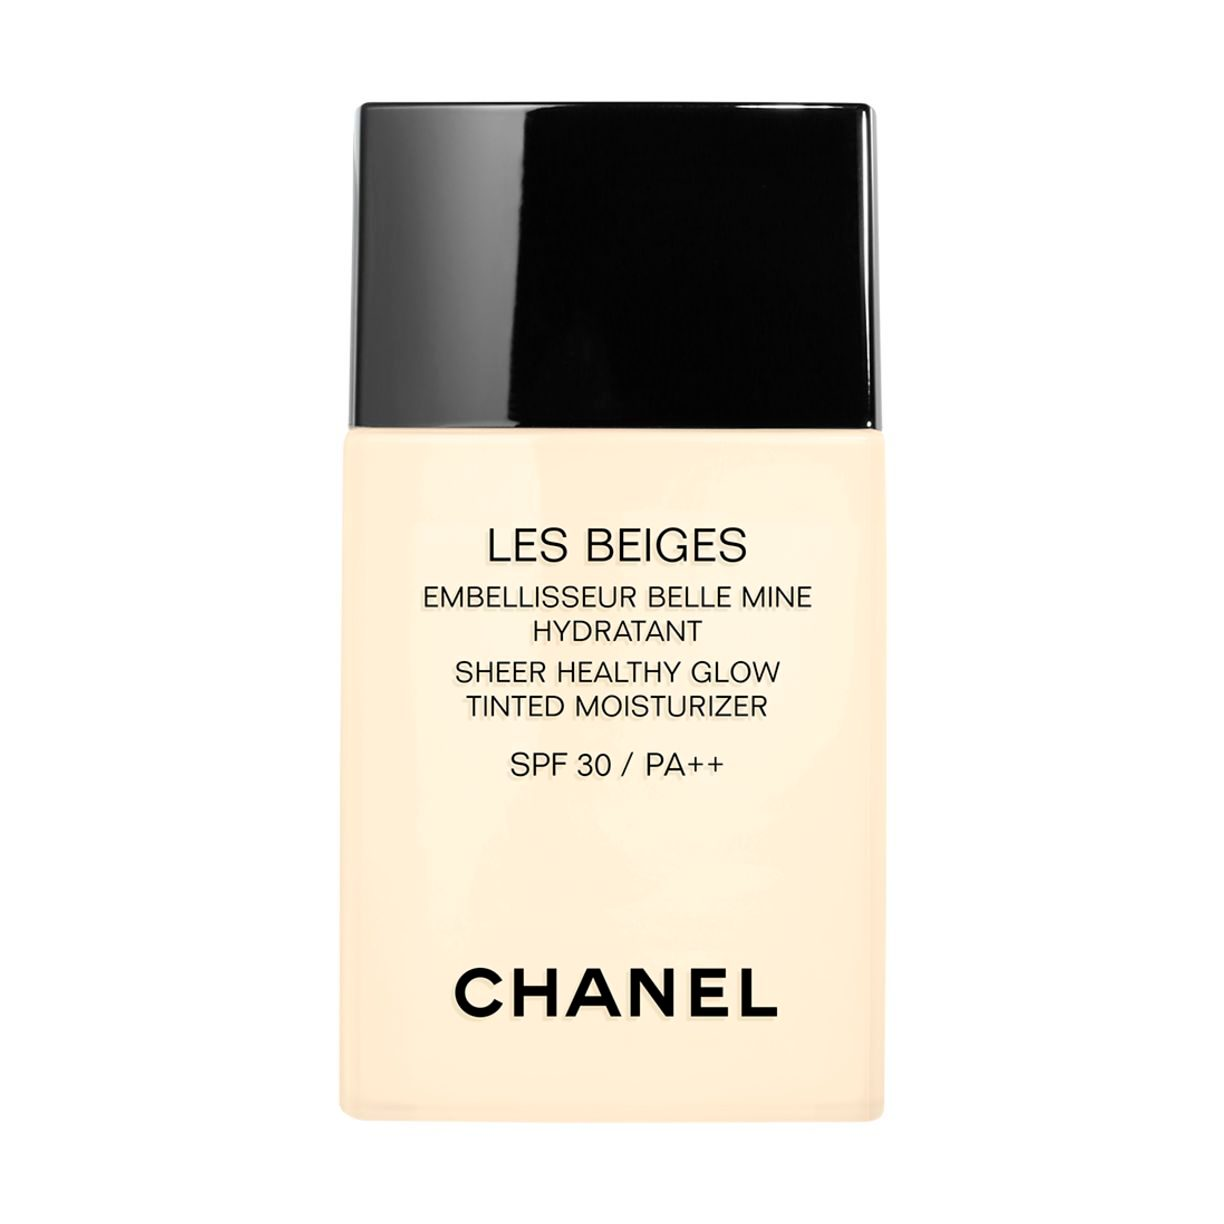 LES BEIGES SHEER HEALTHY GLOW TINTED MOISTURIZER SPF 30 / PA++ LIGHT